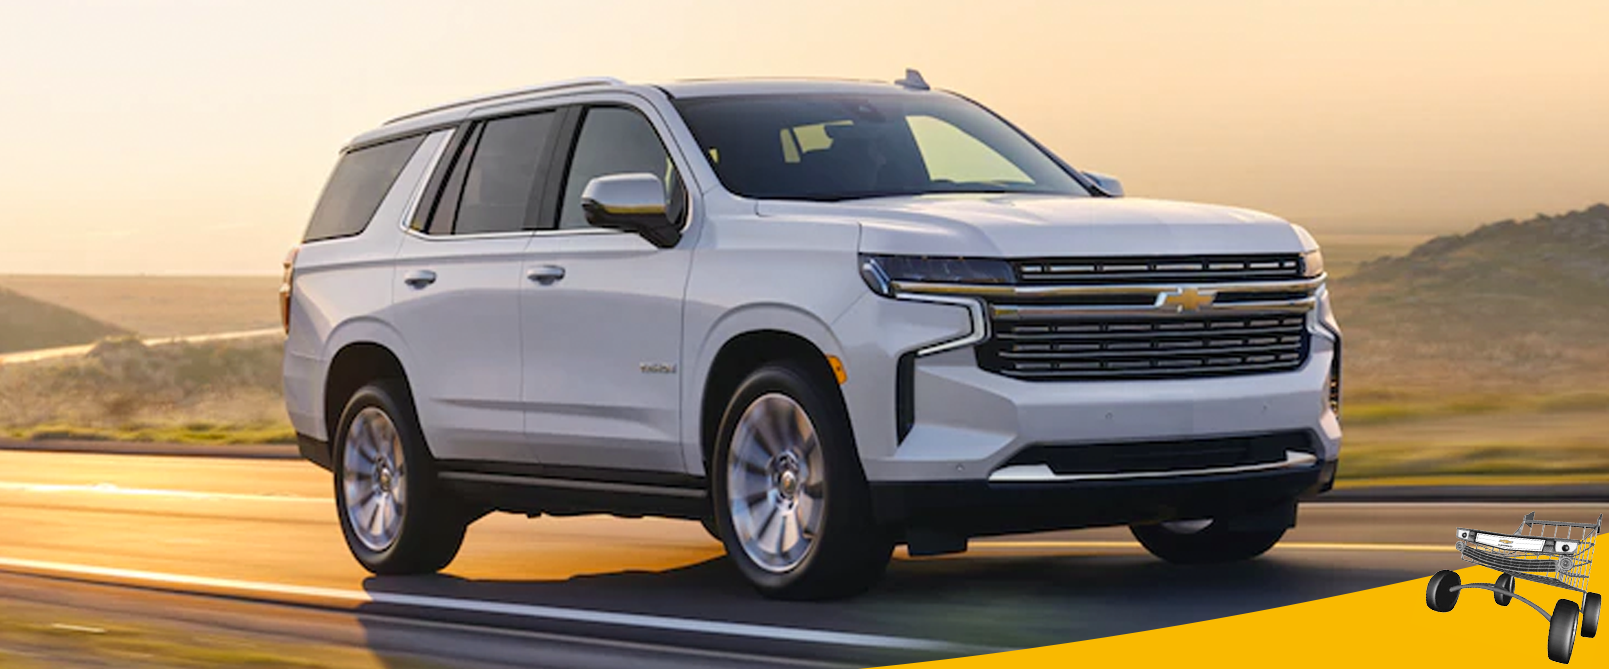 All-New 2021 Chevy Tahoe Chicago IL